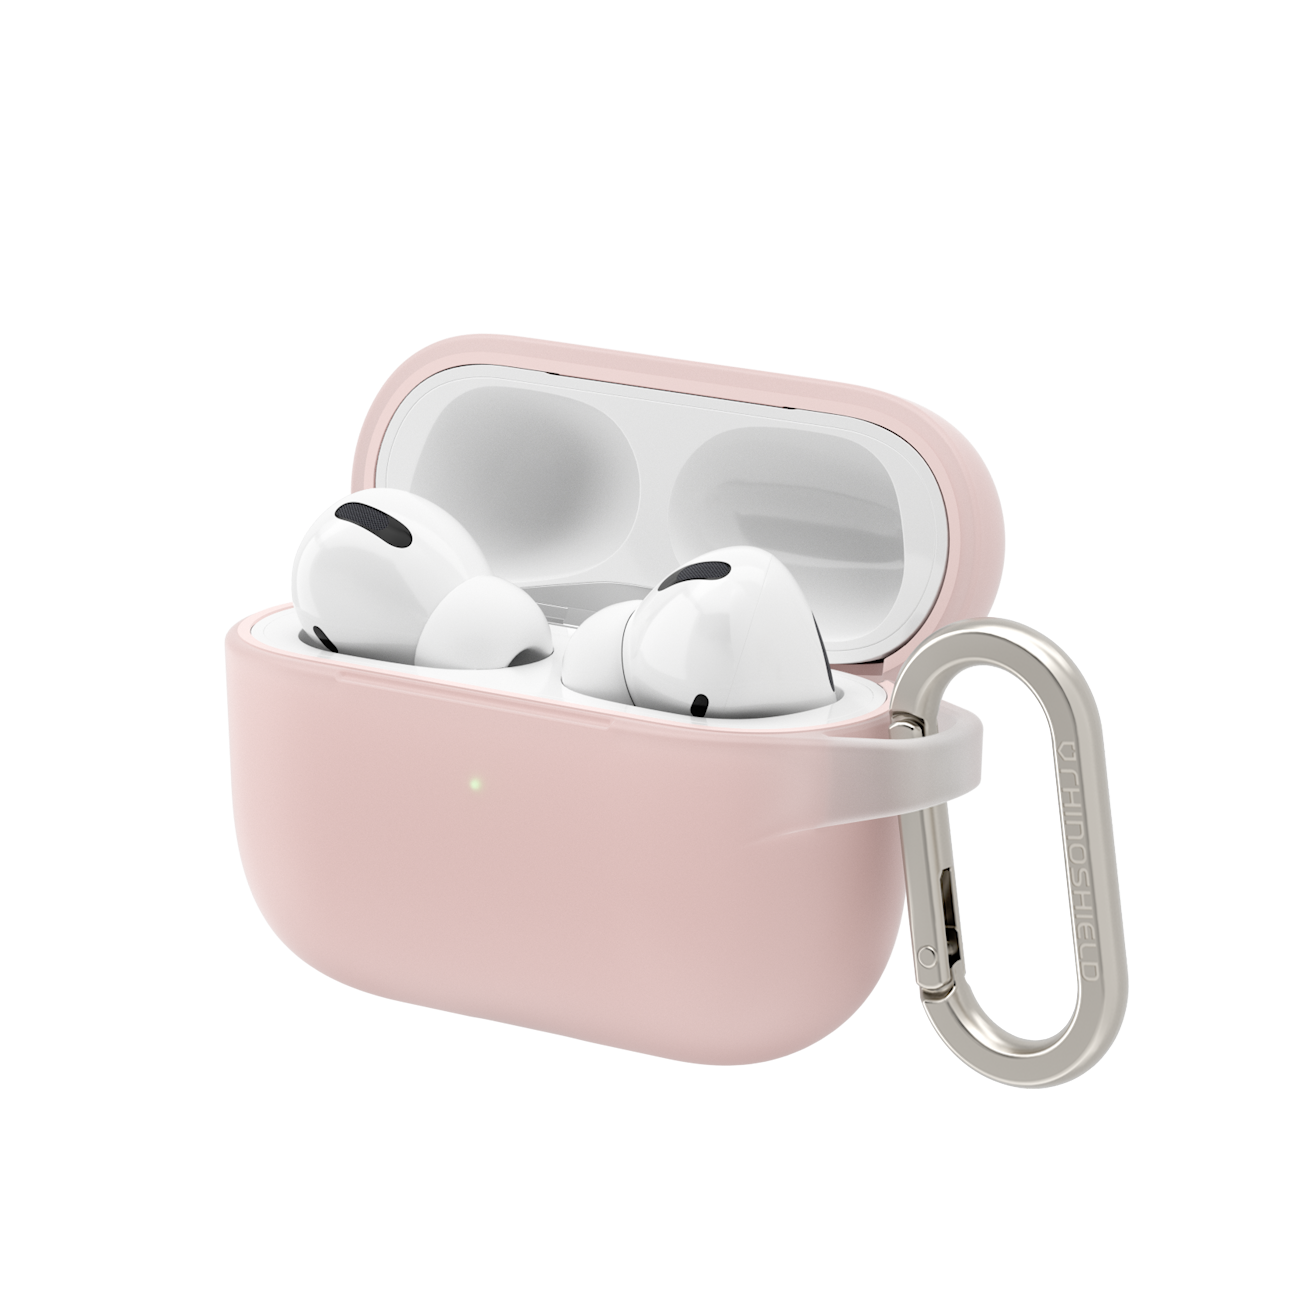 RhinoShield Impact Resistant Case For AirPods Pro - Shell Pink